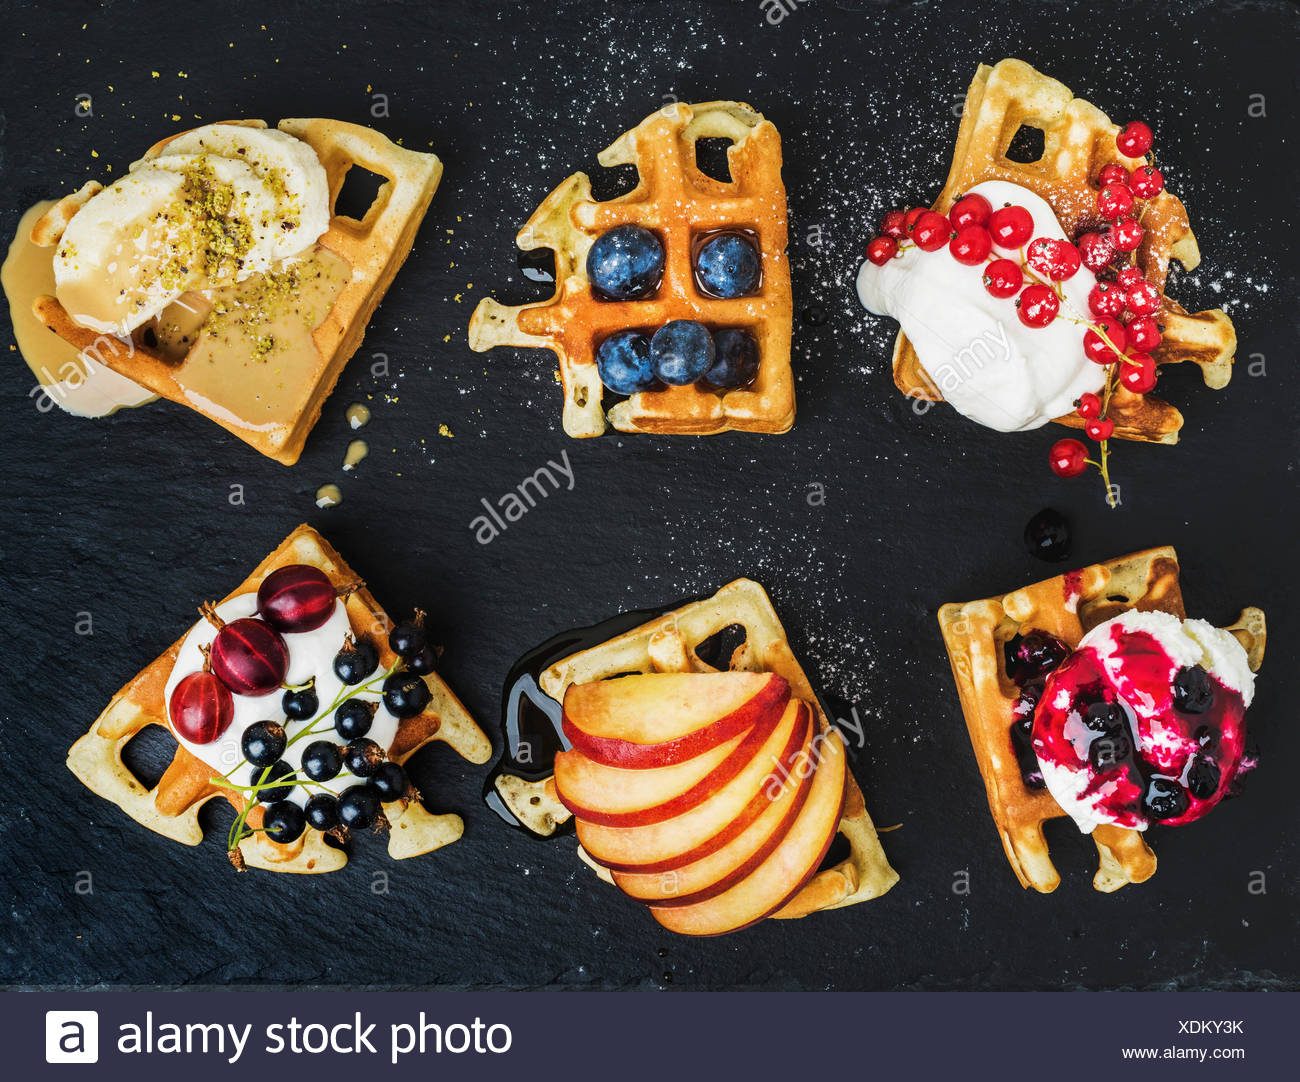 Warm belgian homemade waffles with fresh garden berries, fruit and ice cream on dark slate stone background, top view - Stock Image